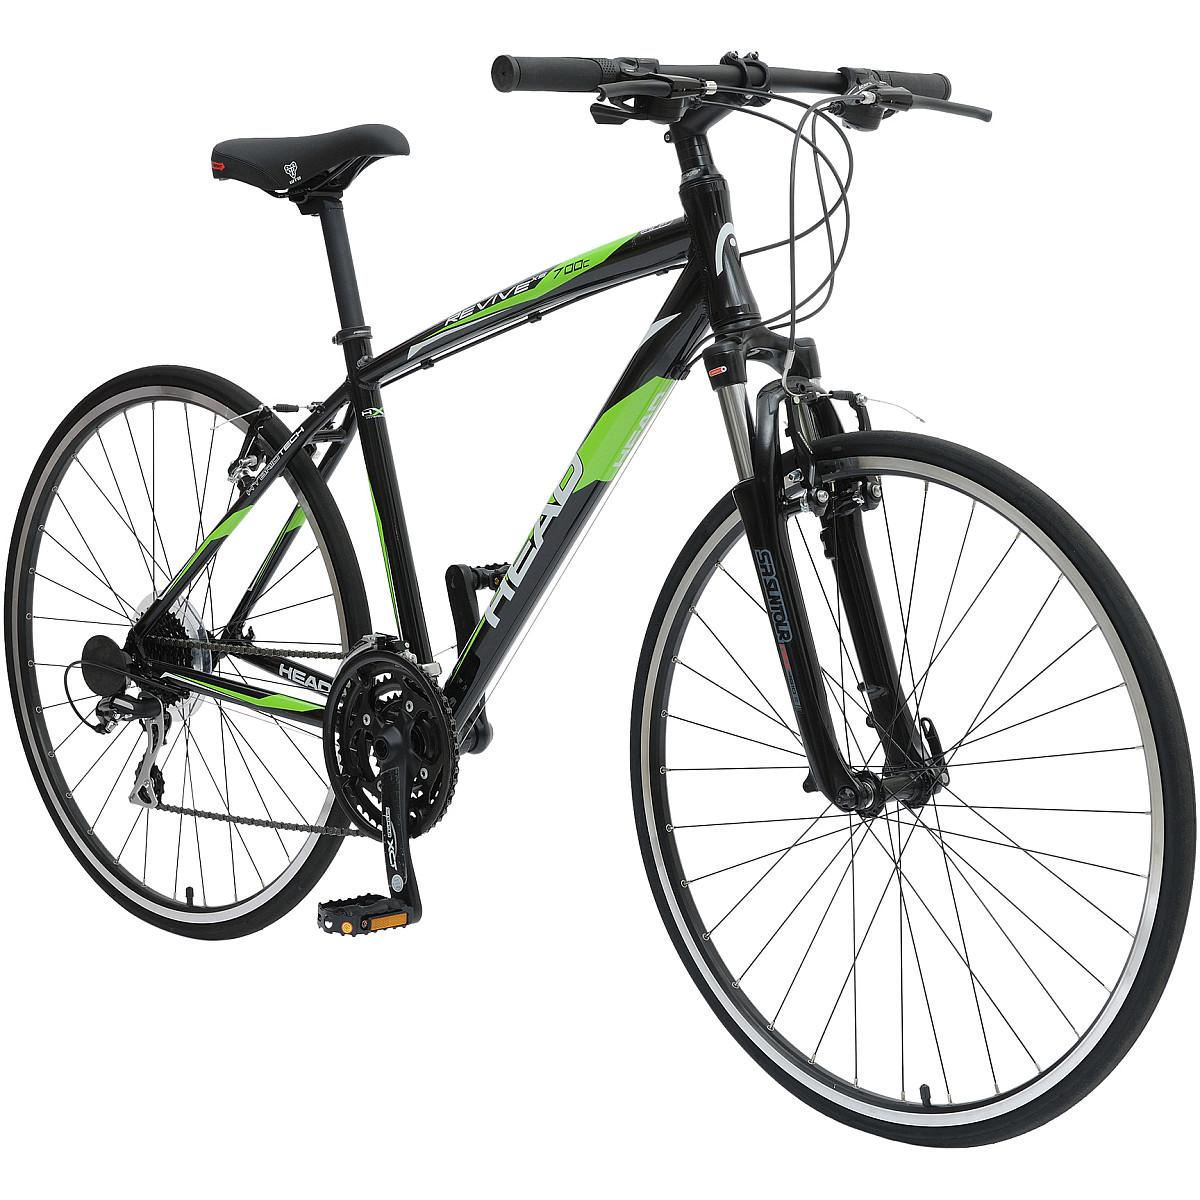 Best Hybrid Bikes under $1000 2020 Reviewed – Top Hybrid Bikes